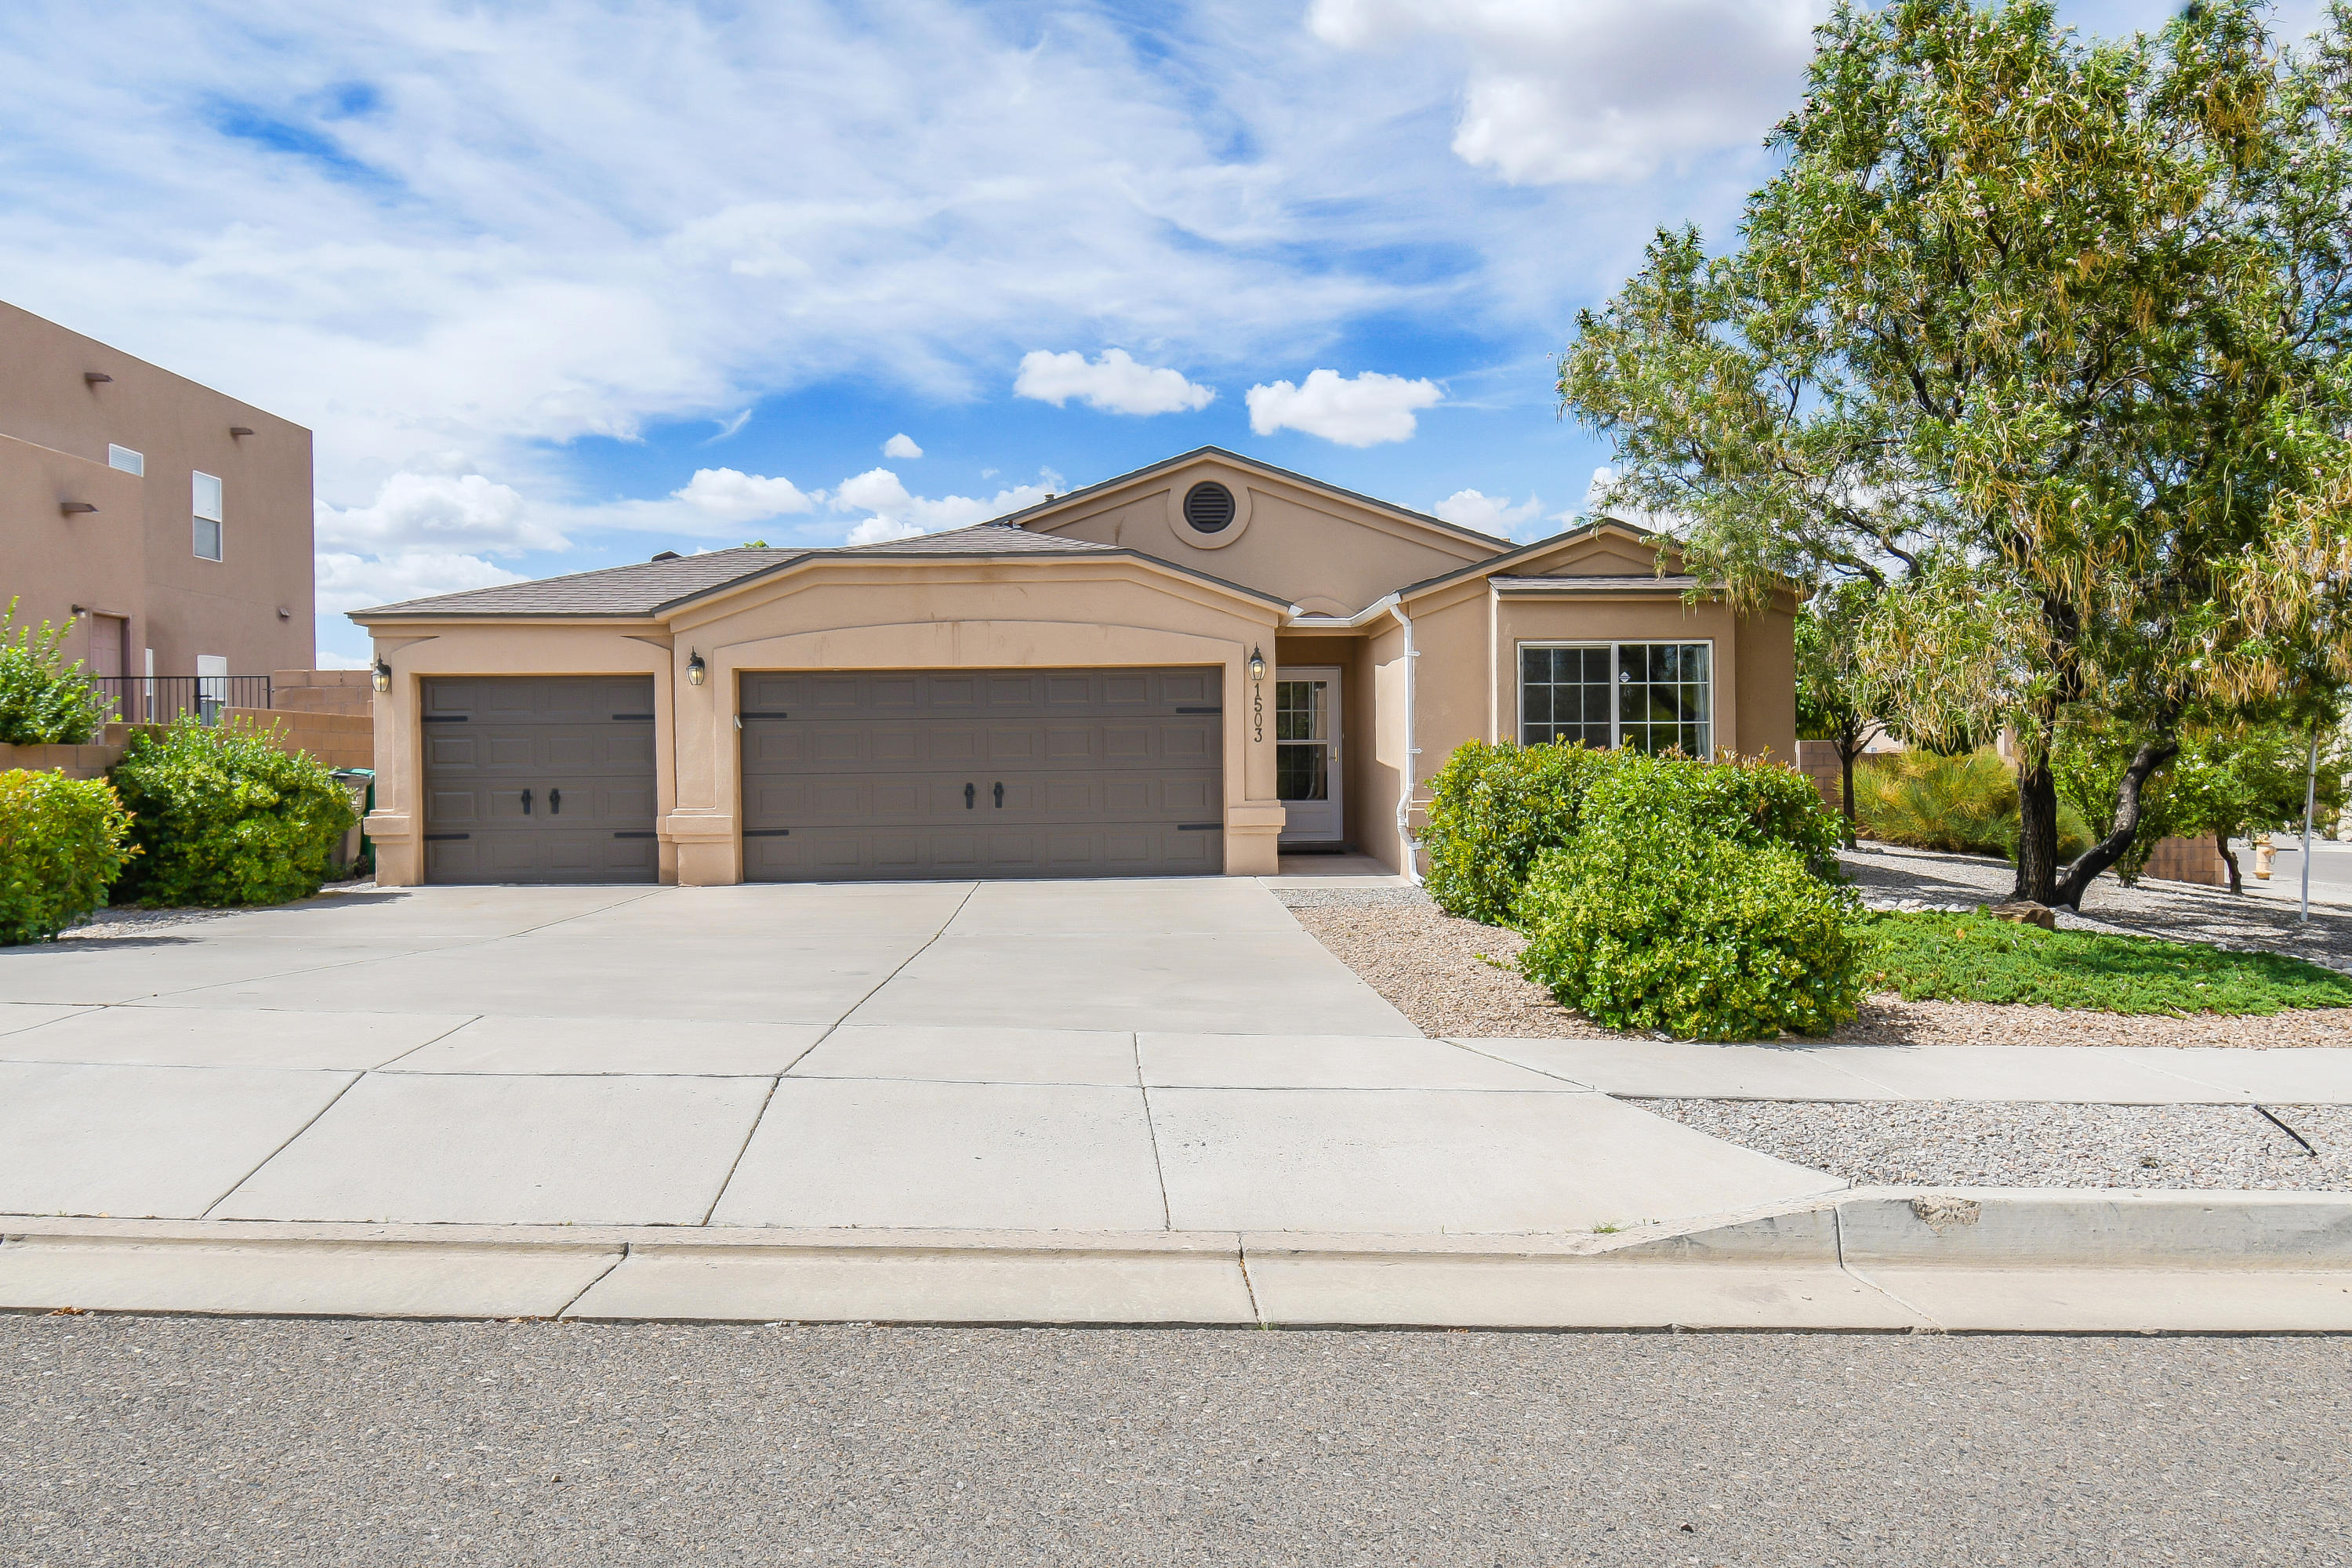 Picture the location of your next house, your new home: Rio Rancho. This Beautiful Spacious 1678 sq. ft. Single-Family Home built in 2006 in a corner lot contains 3 BR, 2 Baths with 3 car garage! Lots of updates in this bright and airy home. New roof installed last 2019 and the sun-filled home has tile throughout including the baseboard. The cozy family space has it's glass covered gas log fireplace perfect for relaxing and unwinding. Granite countertop accented with nice stone tilebacksplash, wooden cabinetry, pantry and appliances creating an incredible kitchen any Chef would approve. The walled backyard has covered patio and a storage shed with stucco and roof that matches the house perfect for entertaining. This prestigious home is a fabulous find and definitely not to be missed!